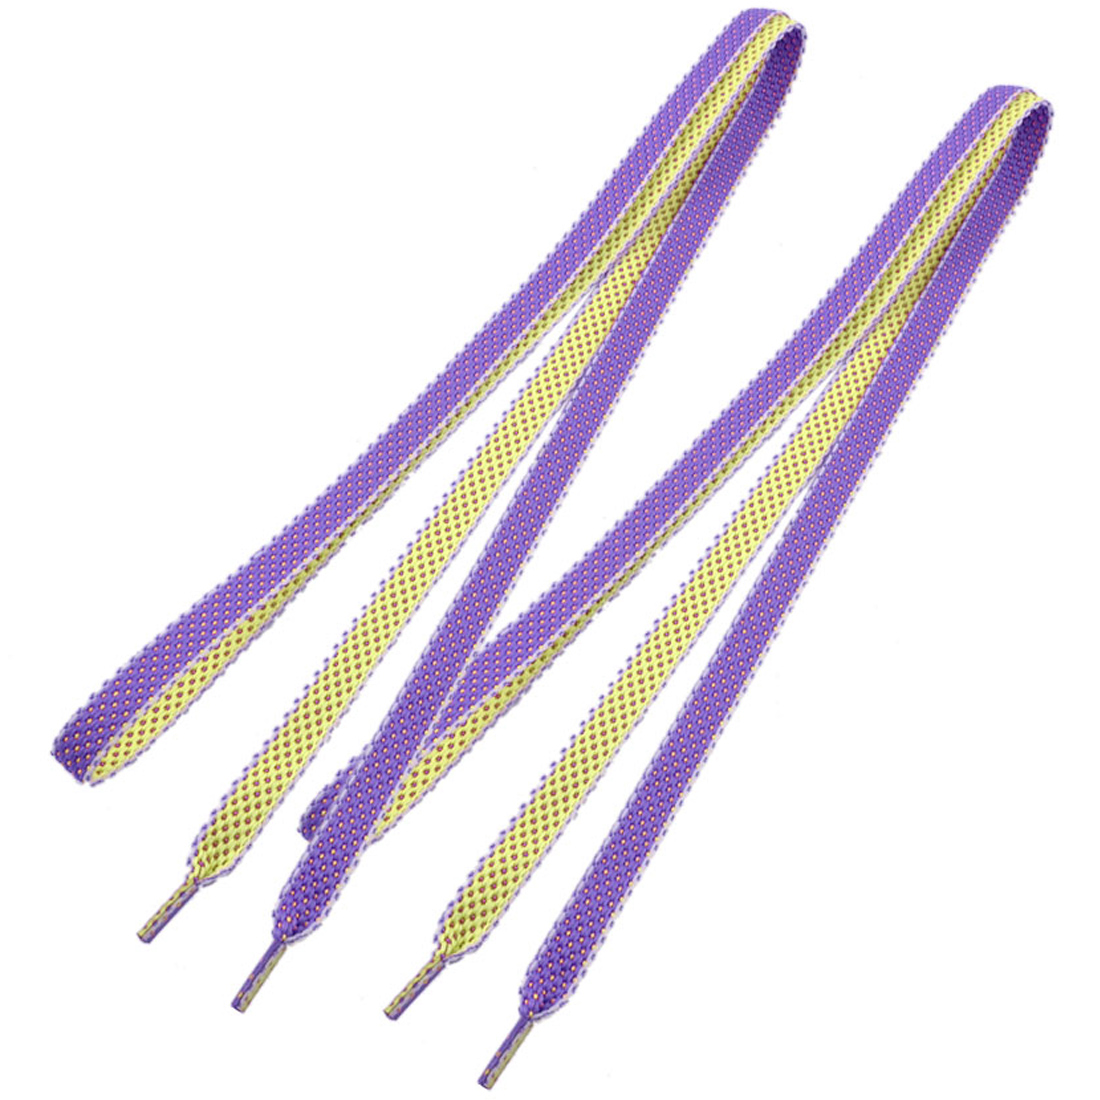 2 Pcs Sneakers Yellow Purple Kintted Style Flat Shoe Laces Strings for Unisex